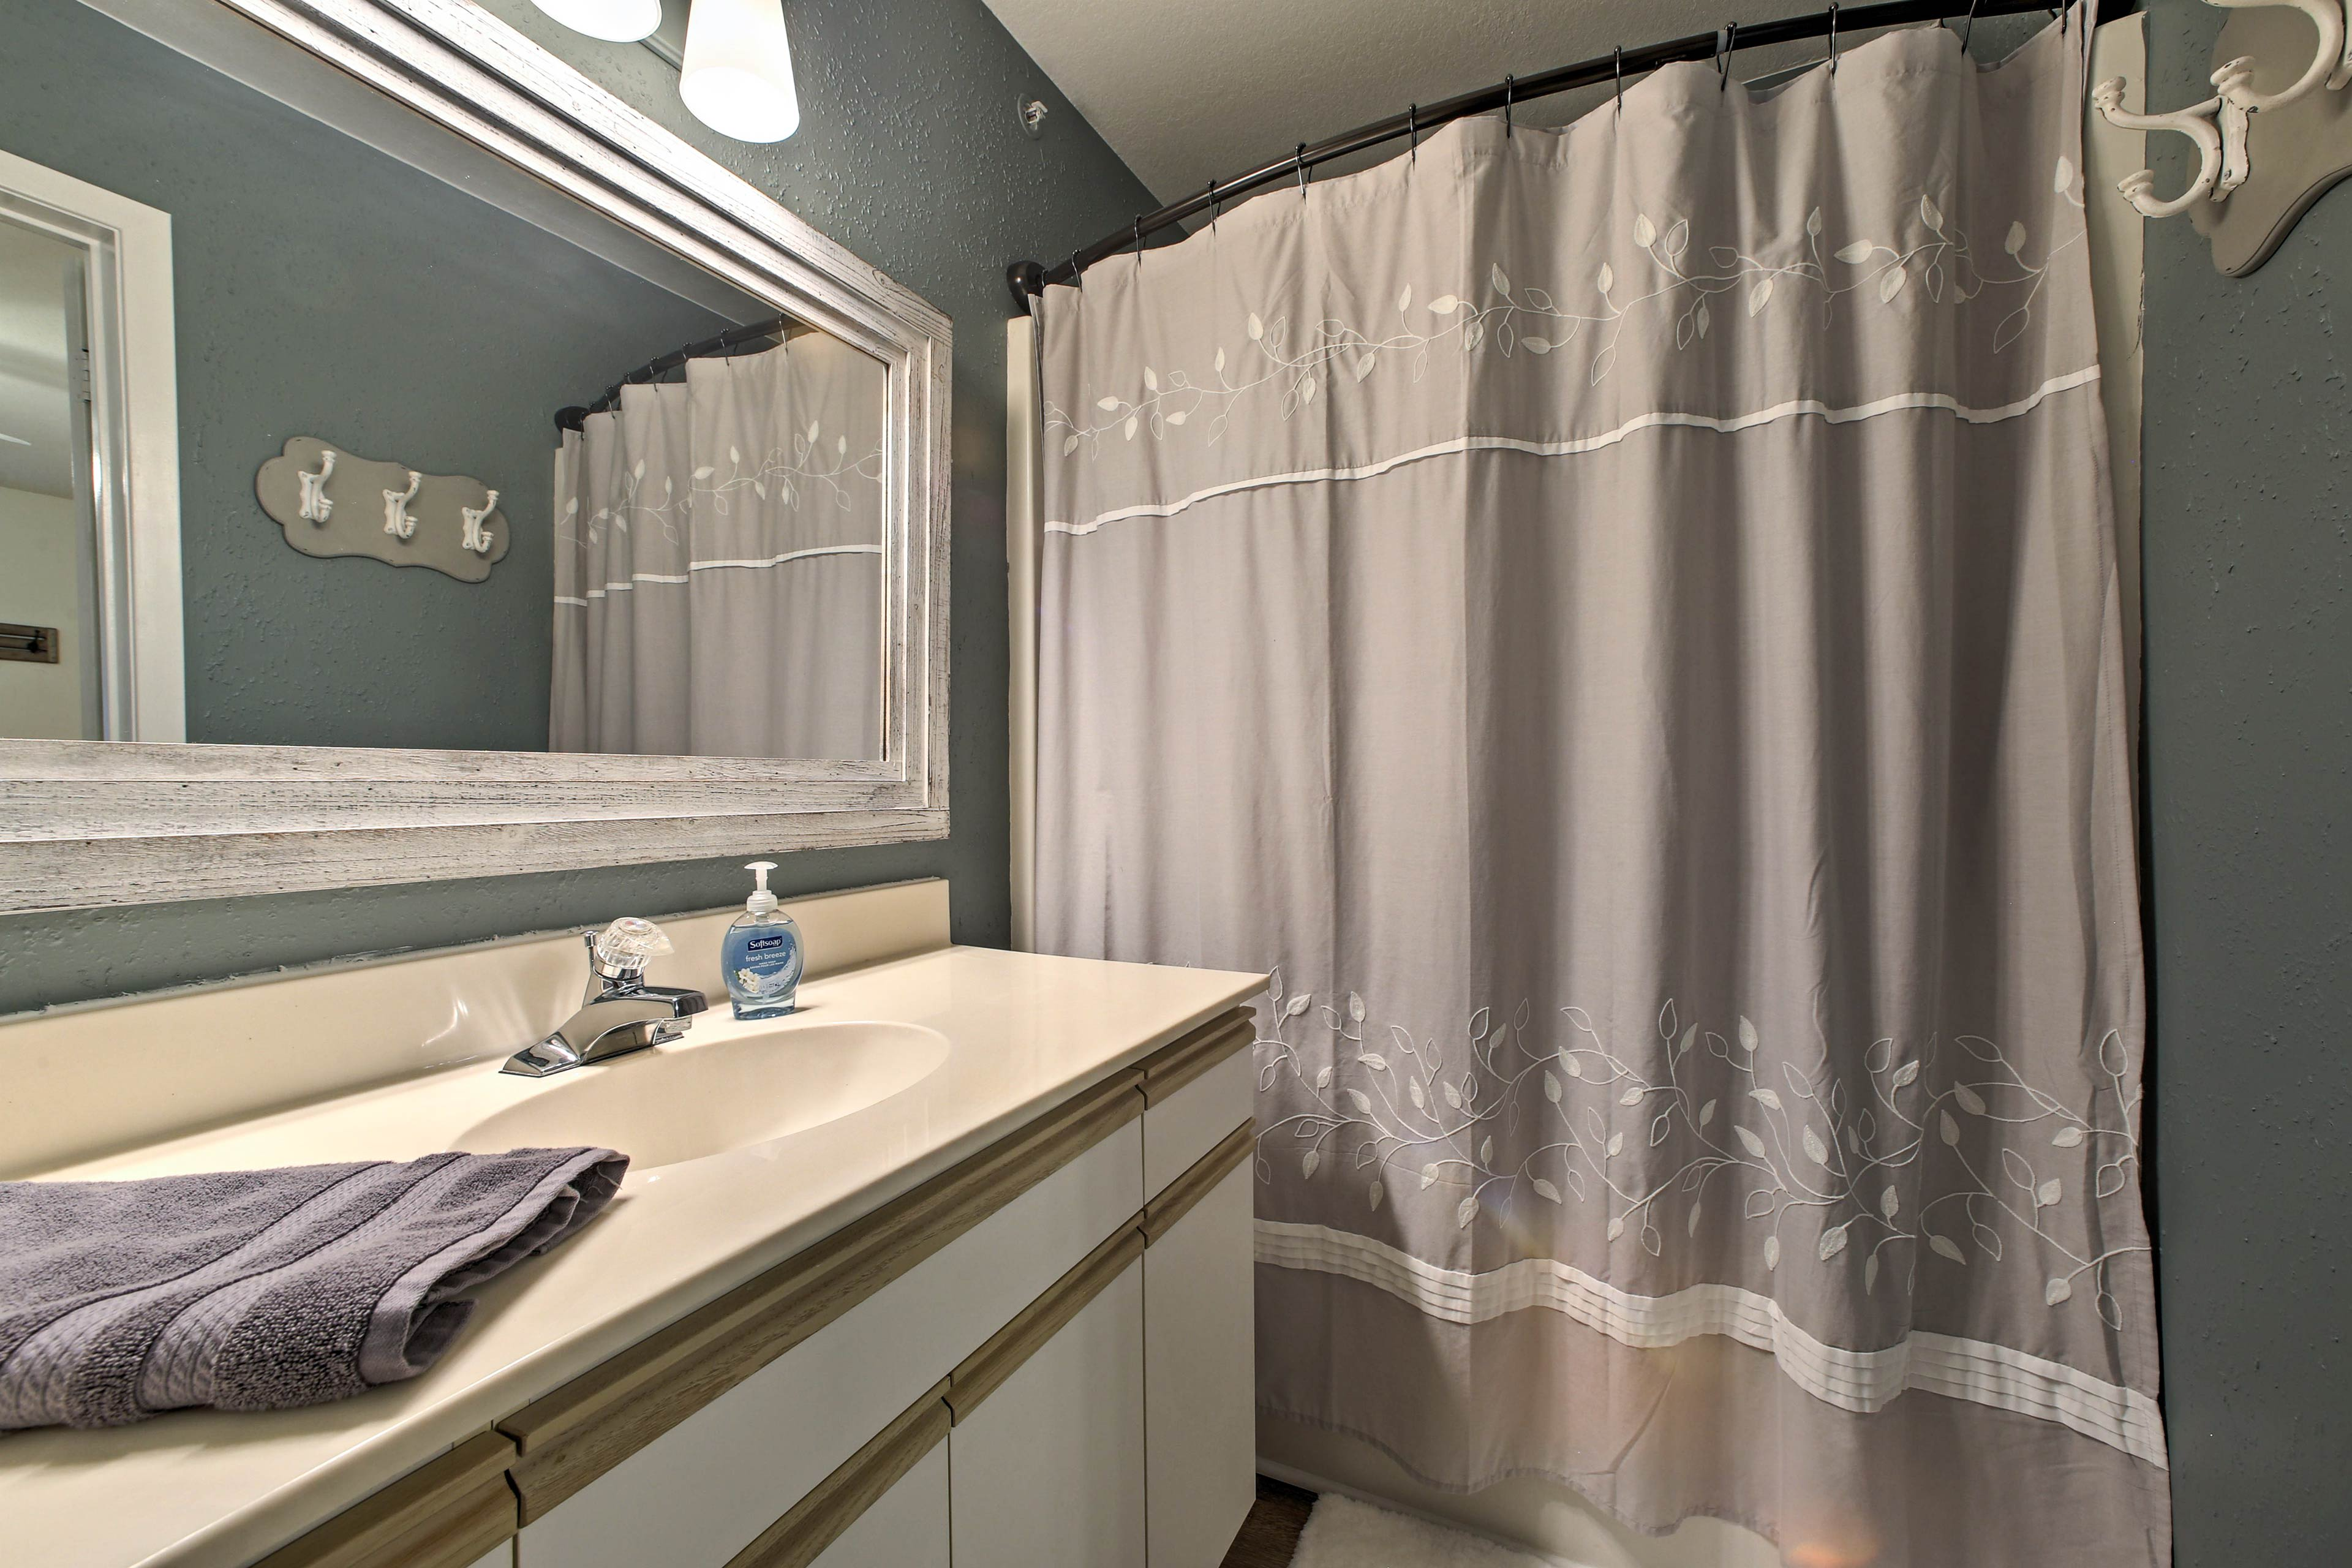 Start the morning with a refreshing rinse in this full en-suite bathroom.